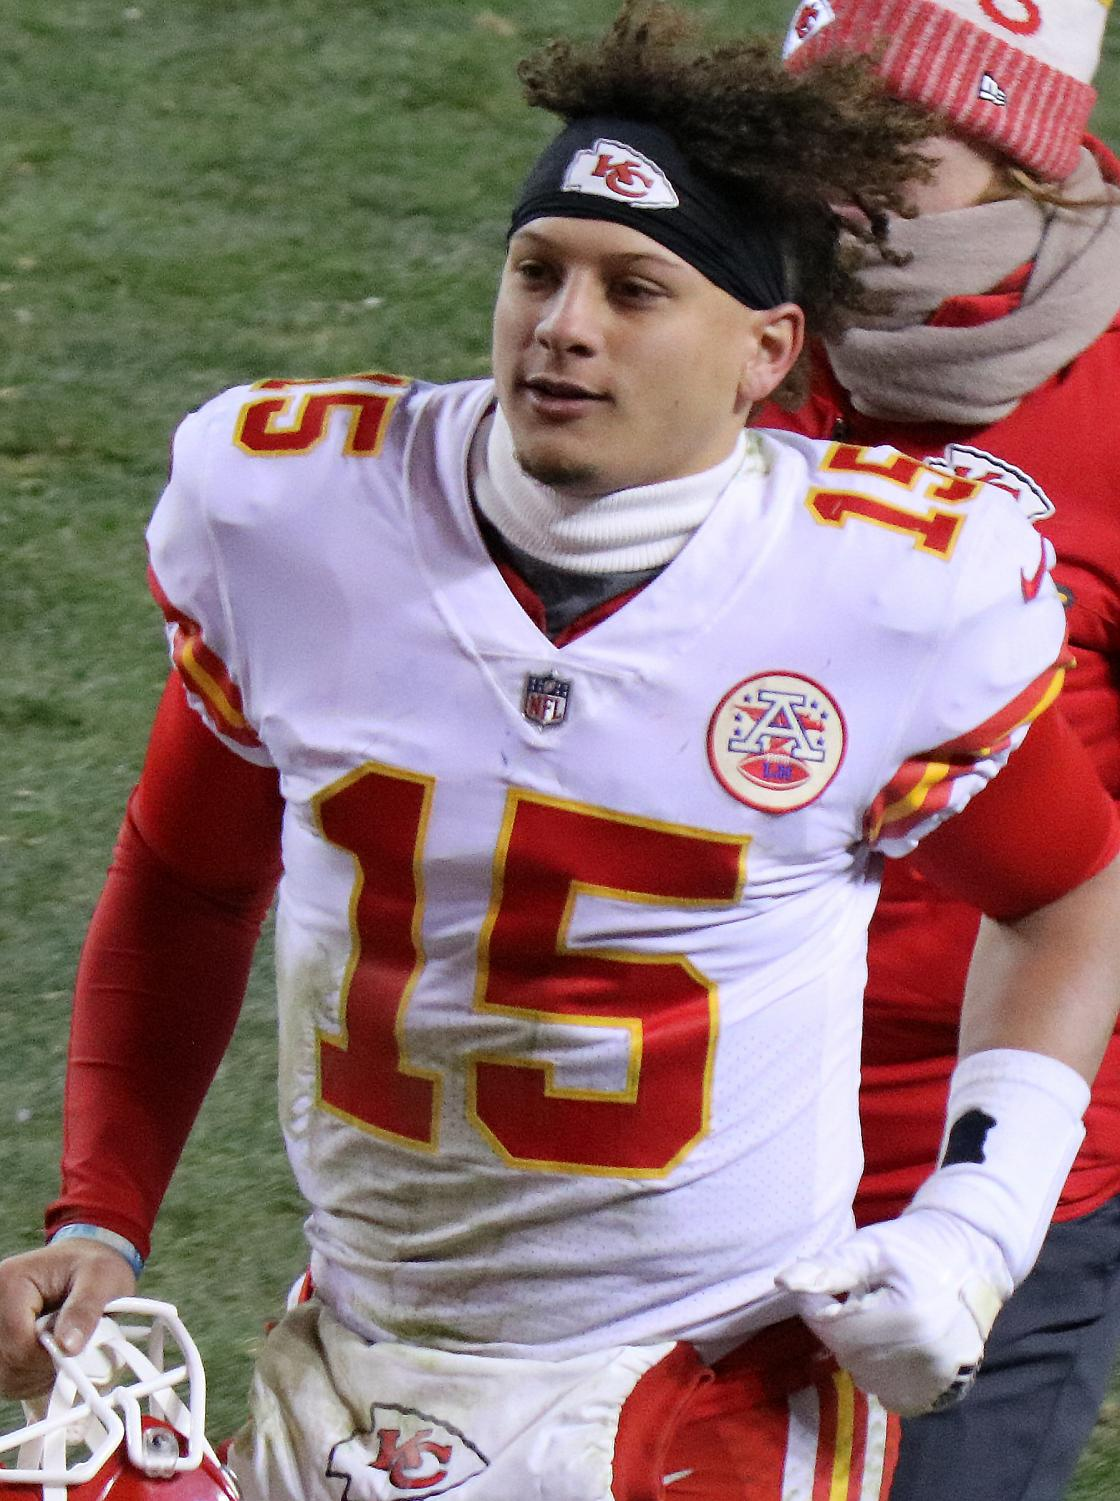 Patrick Mahomes, the quarterback of the Kansas City Chiefs, was named MVP of Super Bowl LIV. (photo obtained via google images under a creative commons license.)